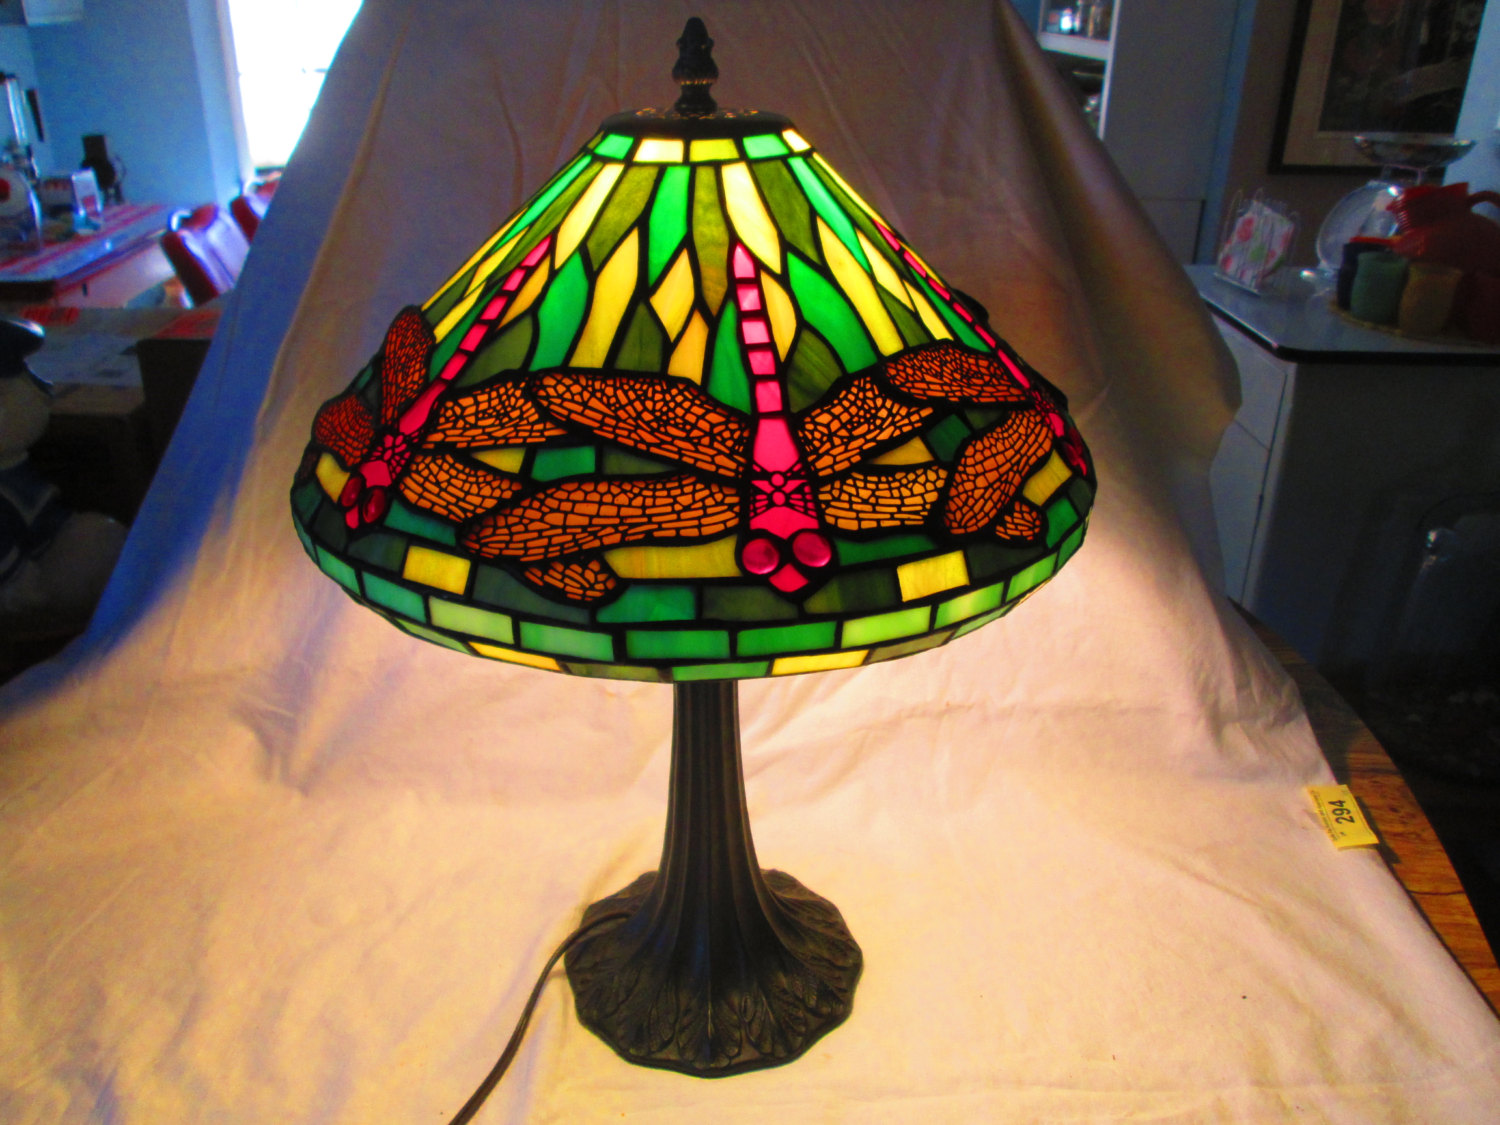 Tiffany Lampen Outlet : Tiffany lamp with dragonflies dragonfly lamp shades u tncattlelane